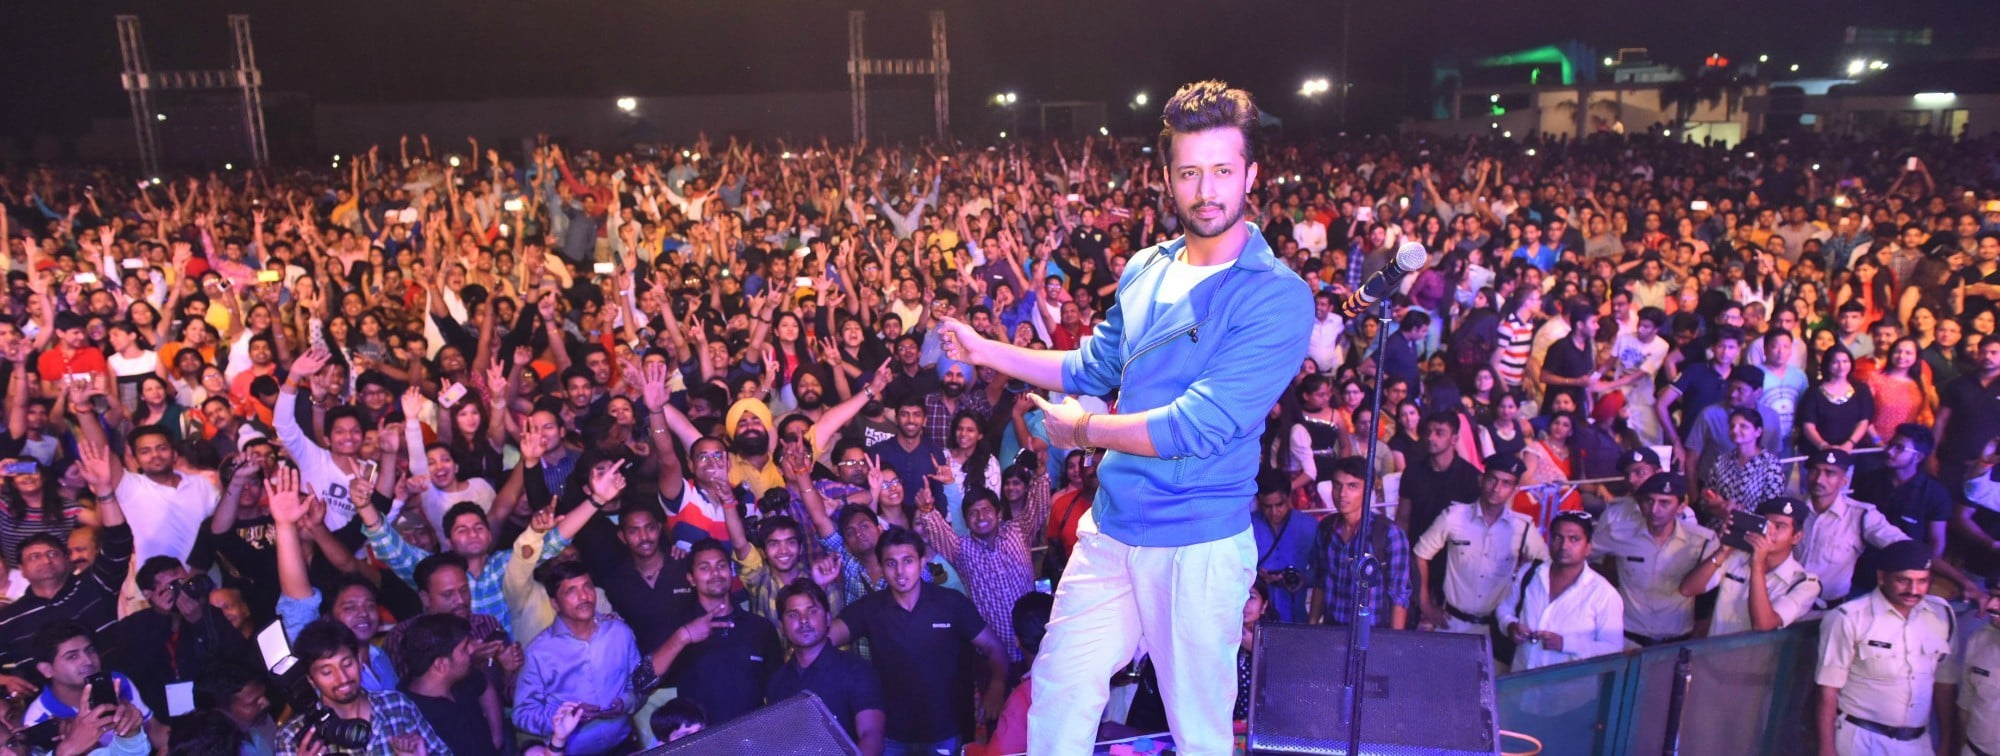 Image result for Atif aslam concert